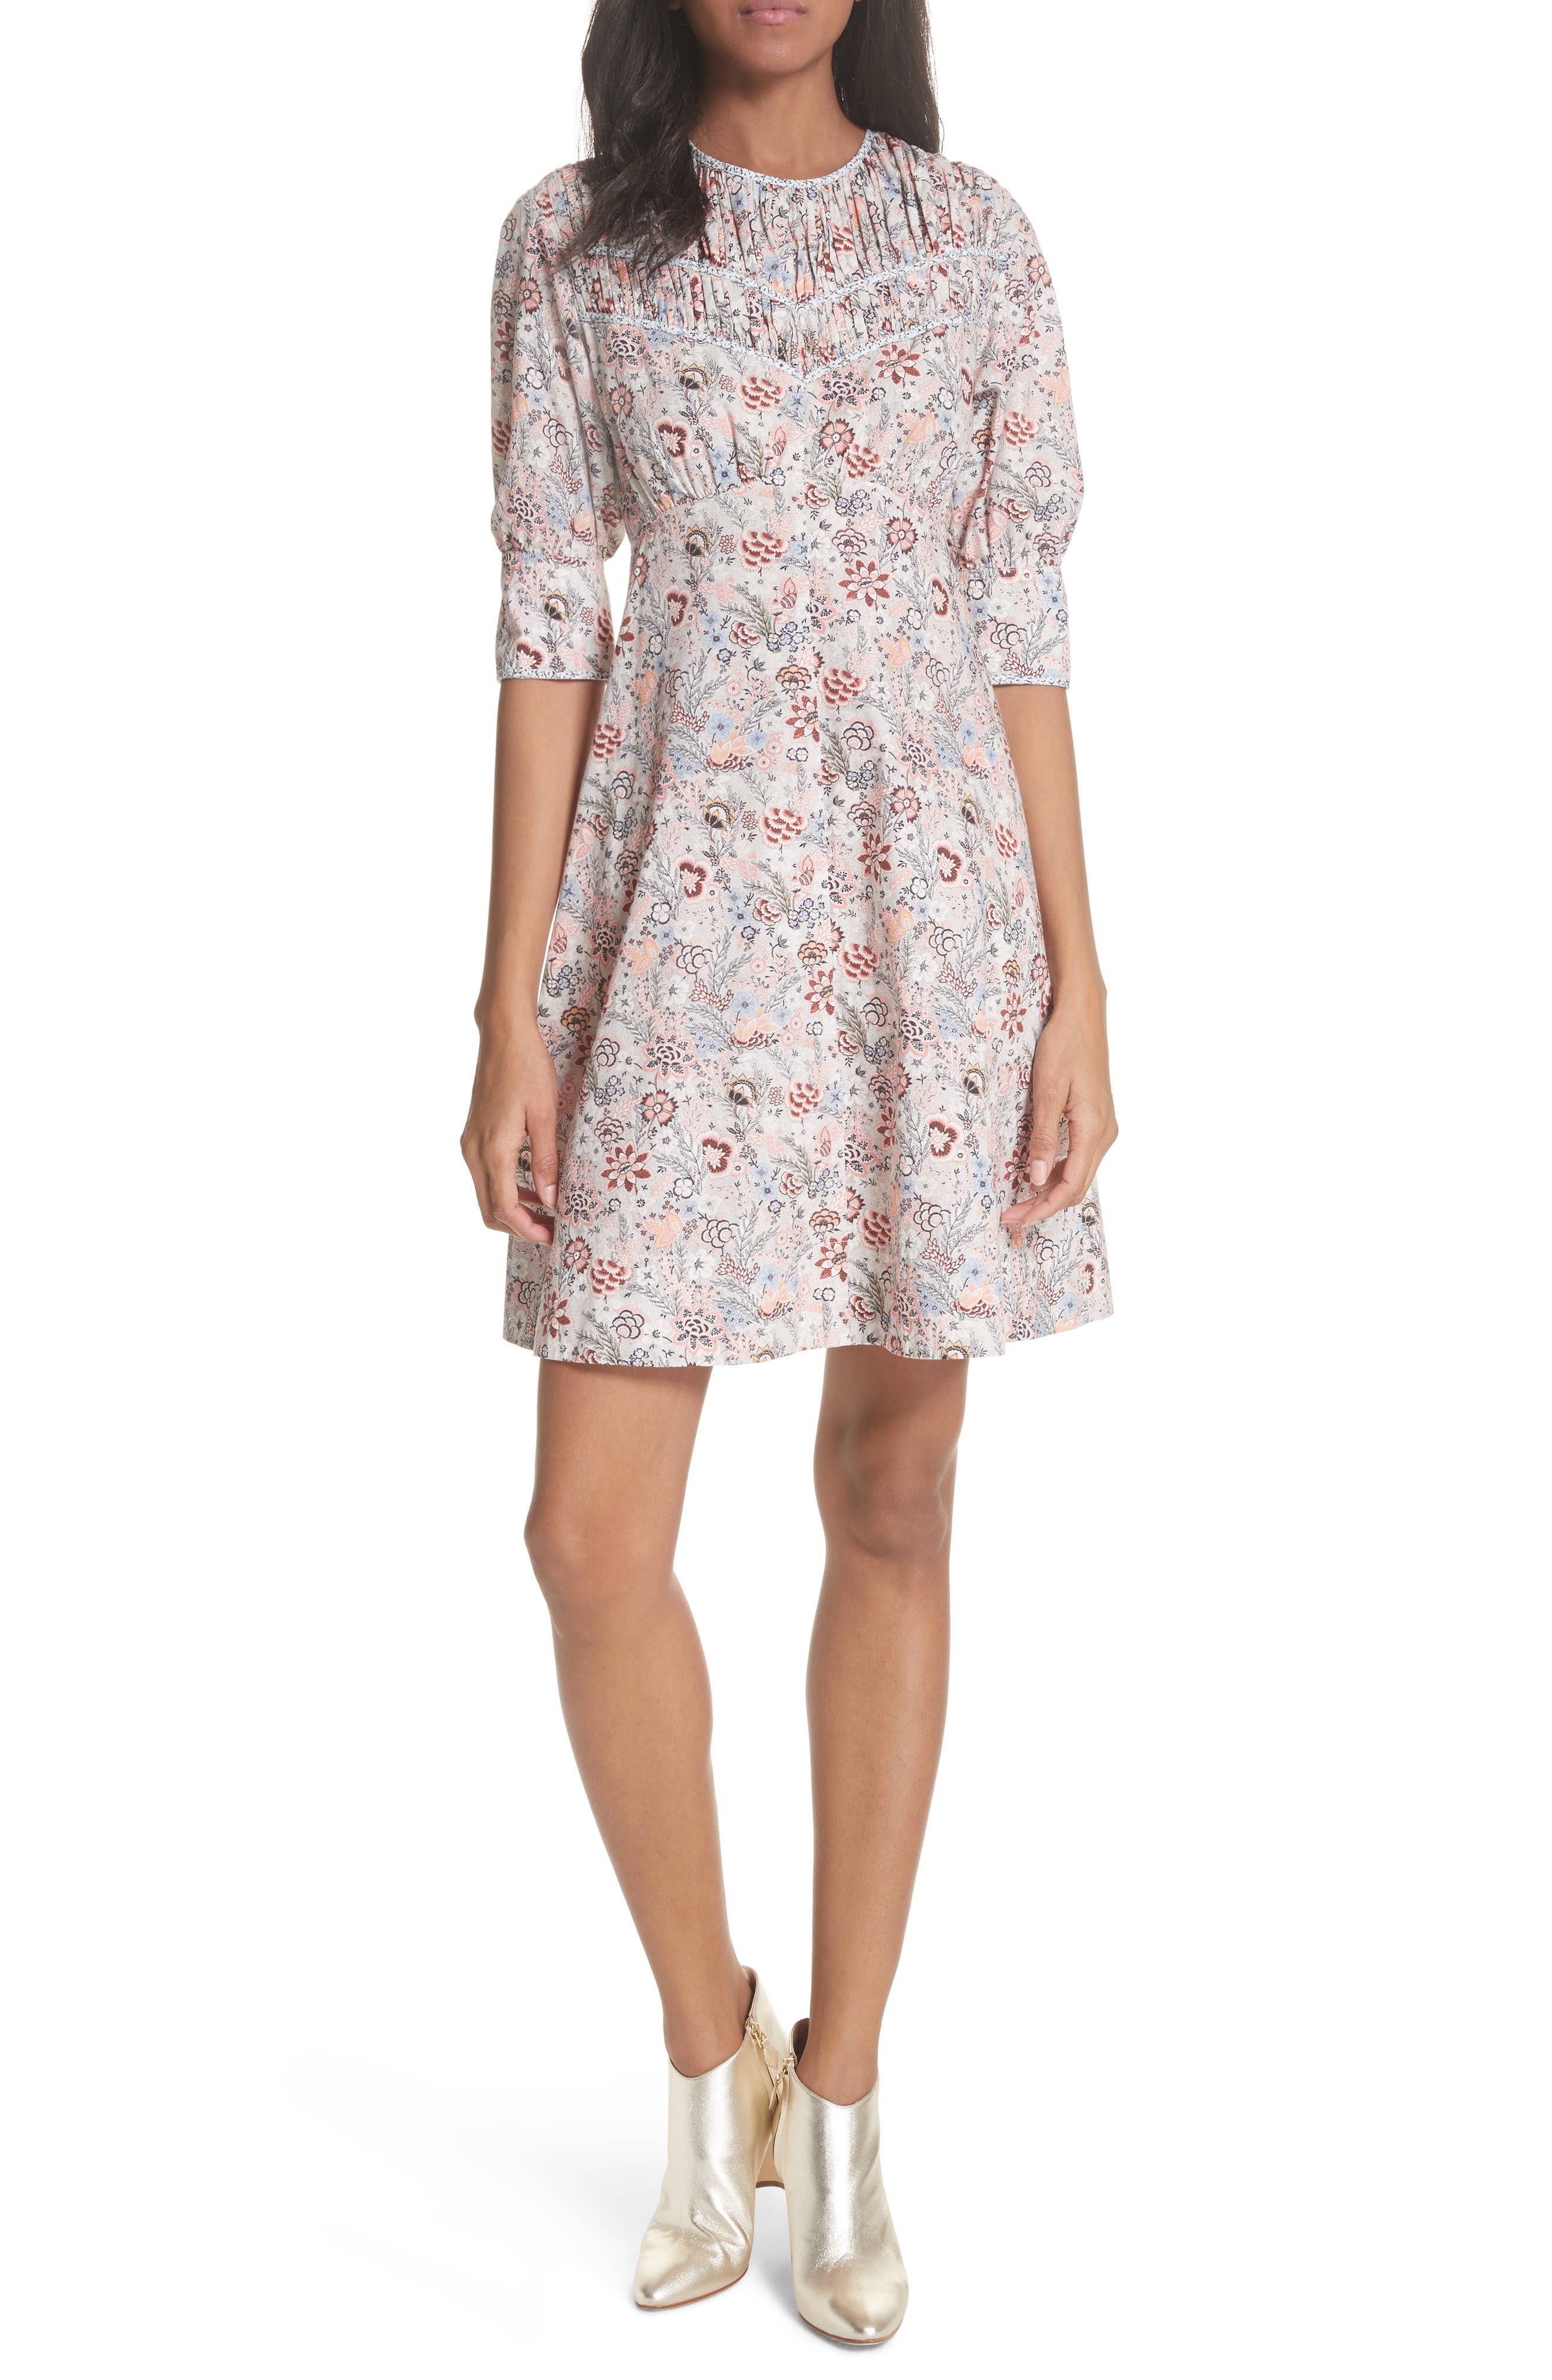 La Vie Rebecca Taylor Lotus Floral Cotton Dress